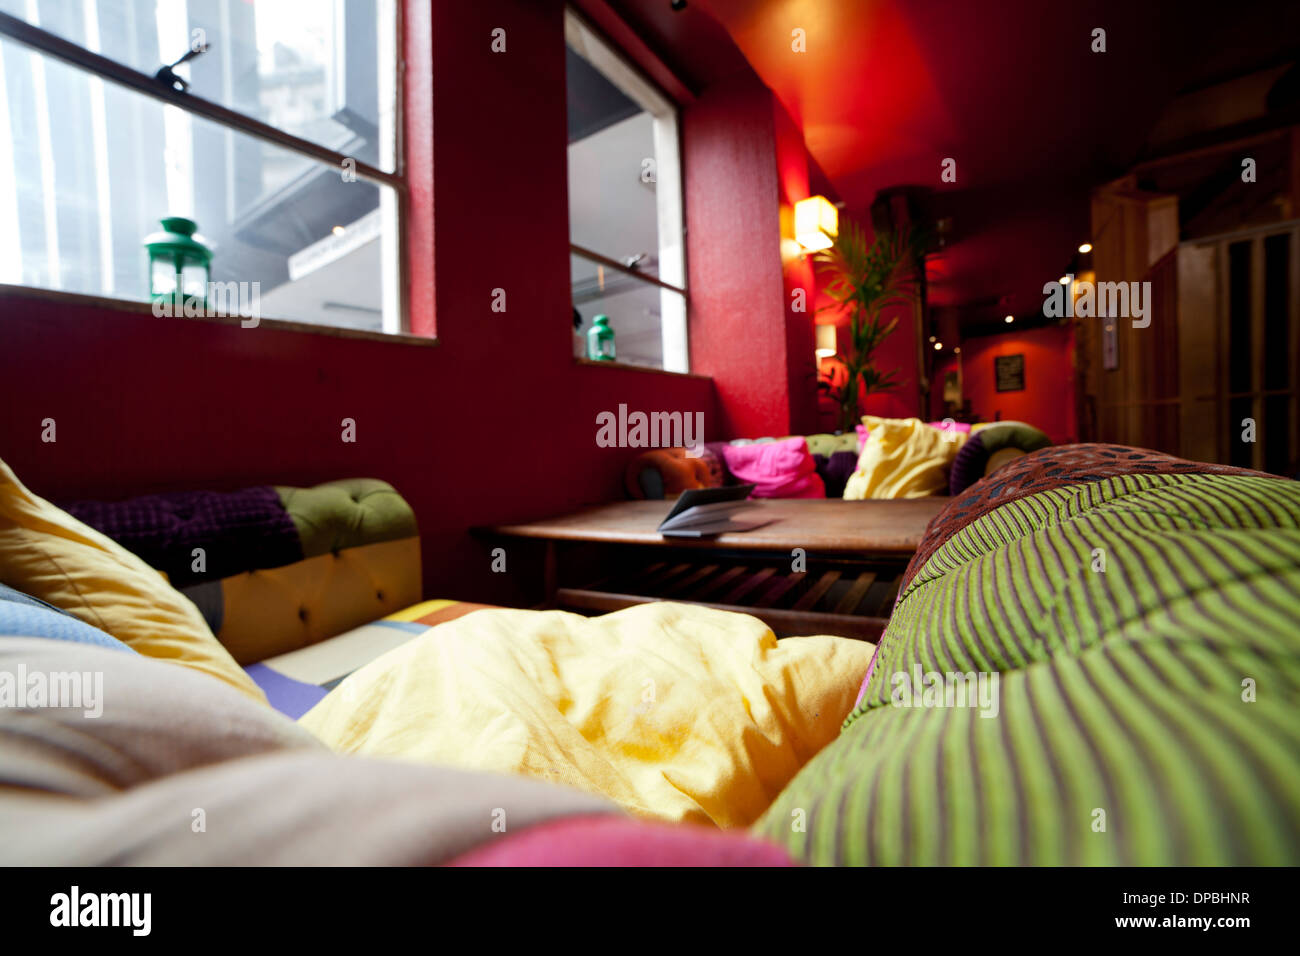 Patchwork comfortable sofas and red painted walls - Stock Image